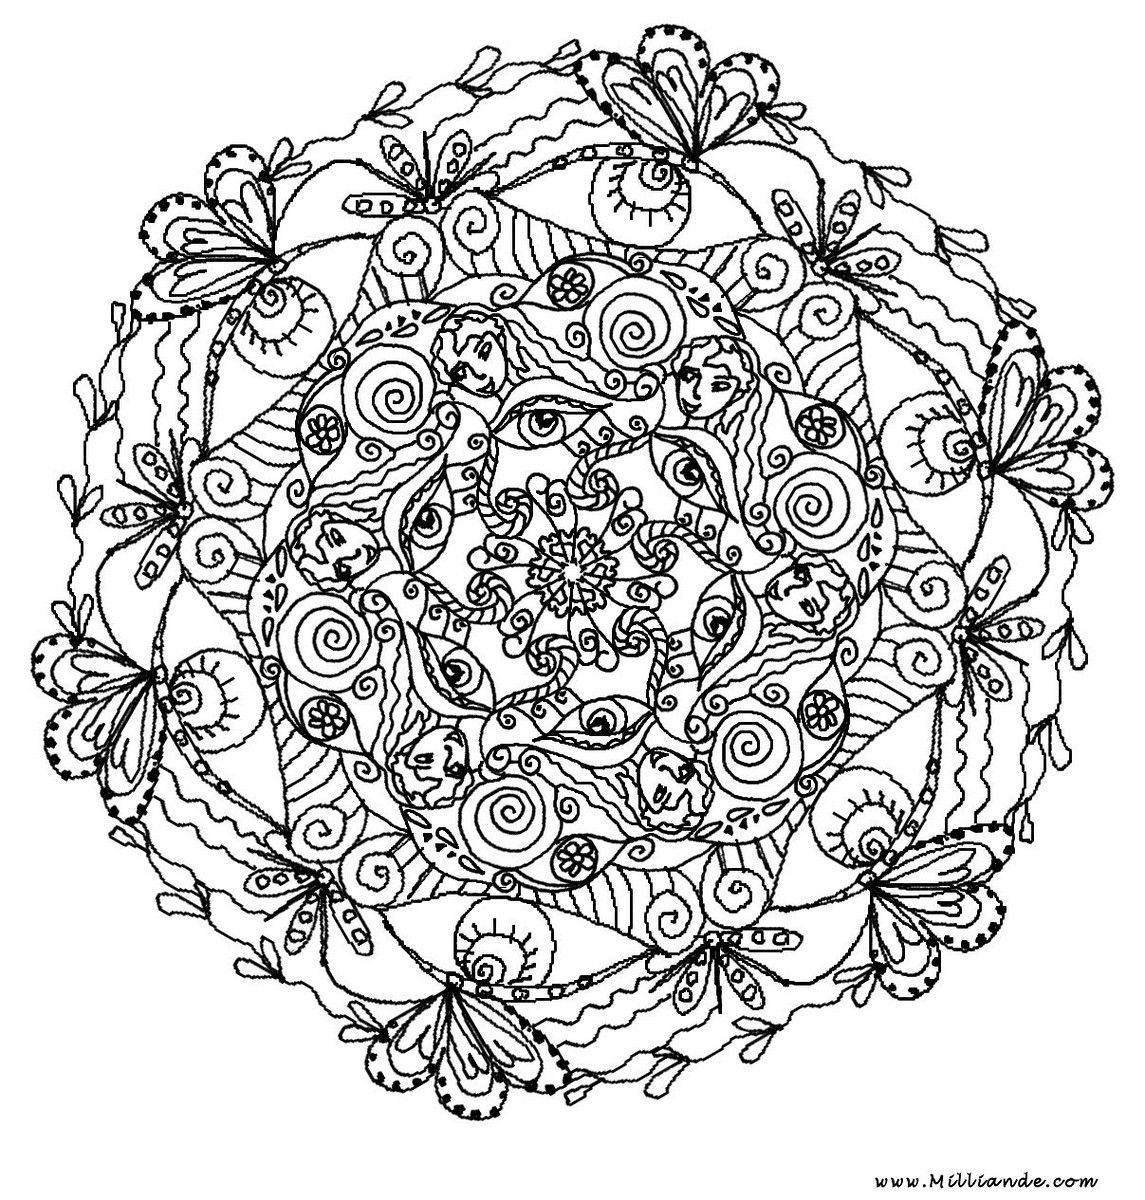 Coloring Pages Mandala Coloring Pages Printable 1000 images about mandalas on pinterest coloring free printable pages and mandala coloring